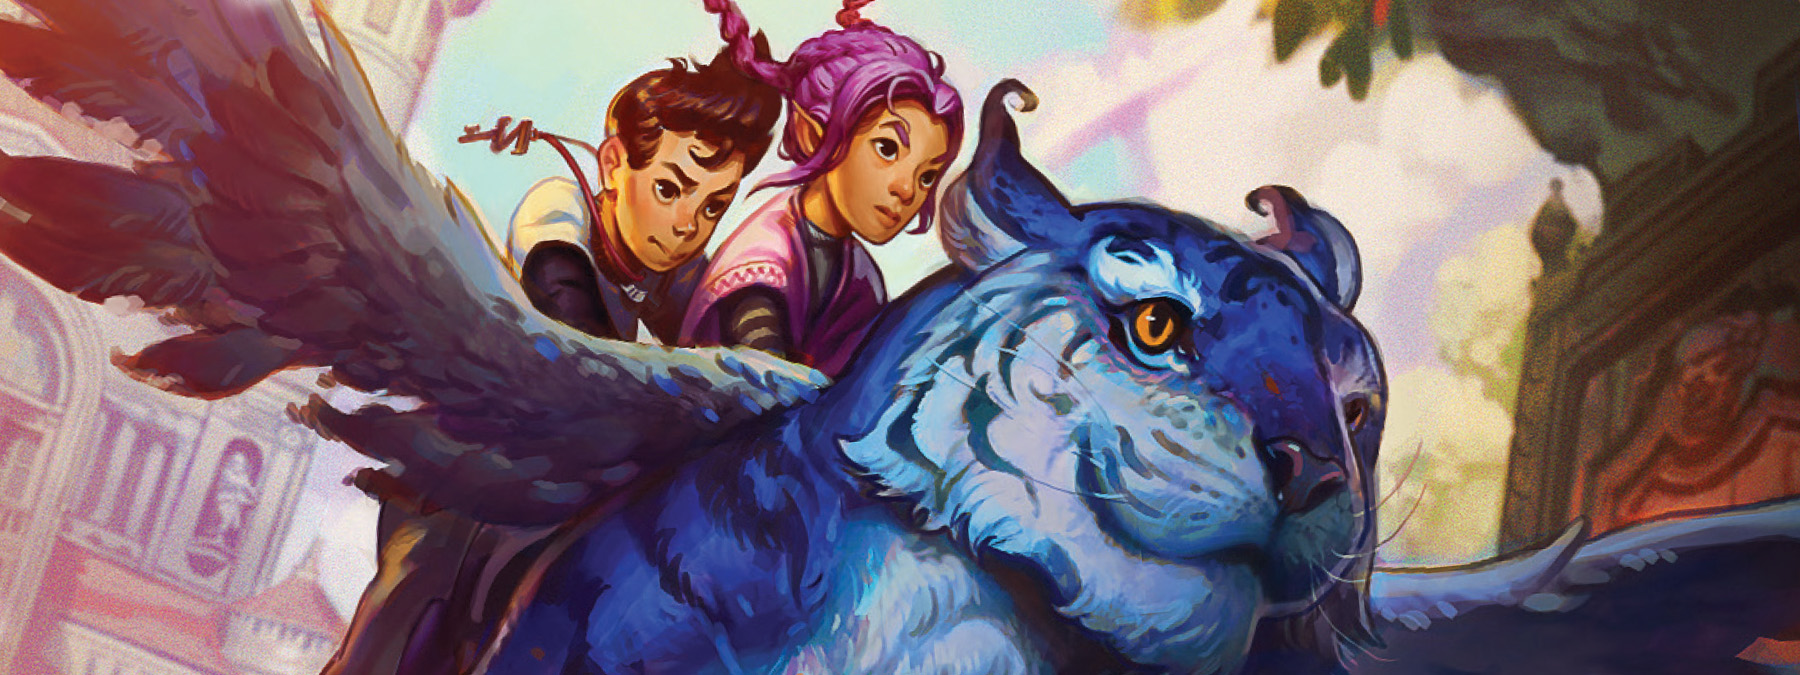 Cover image from THE SECRET OF ZOONE, illustrated by Evan Monteiro and written by Lee Edward Fodi.